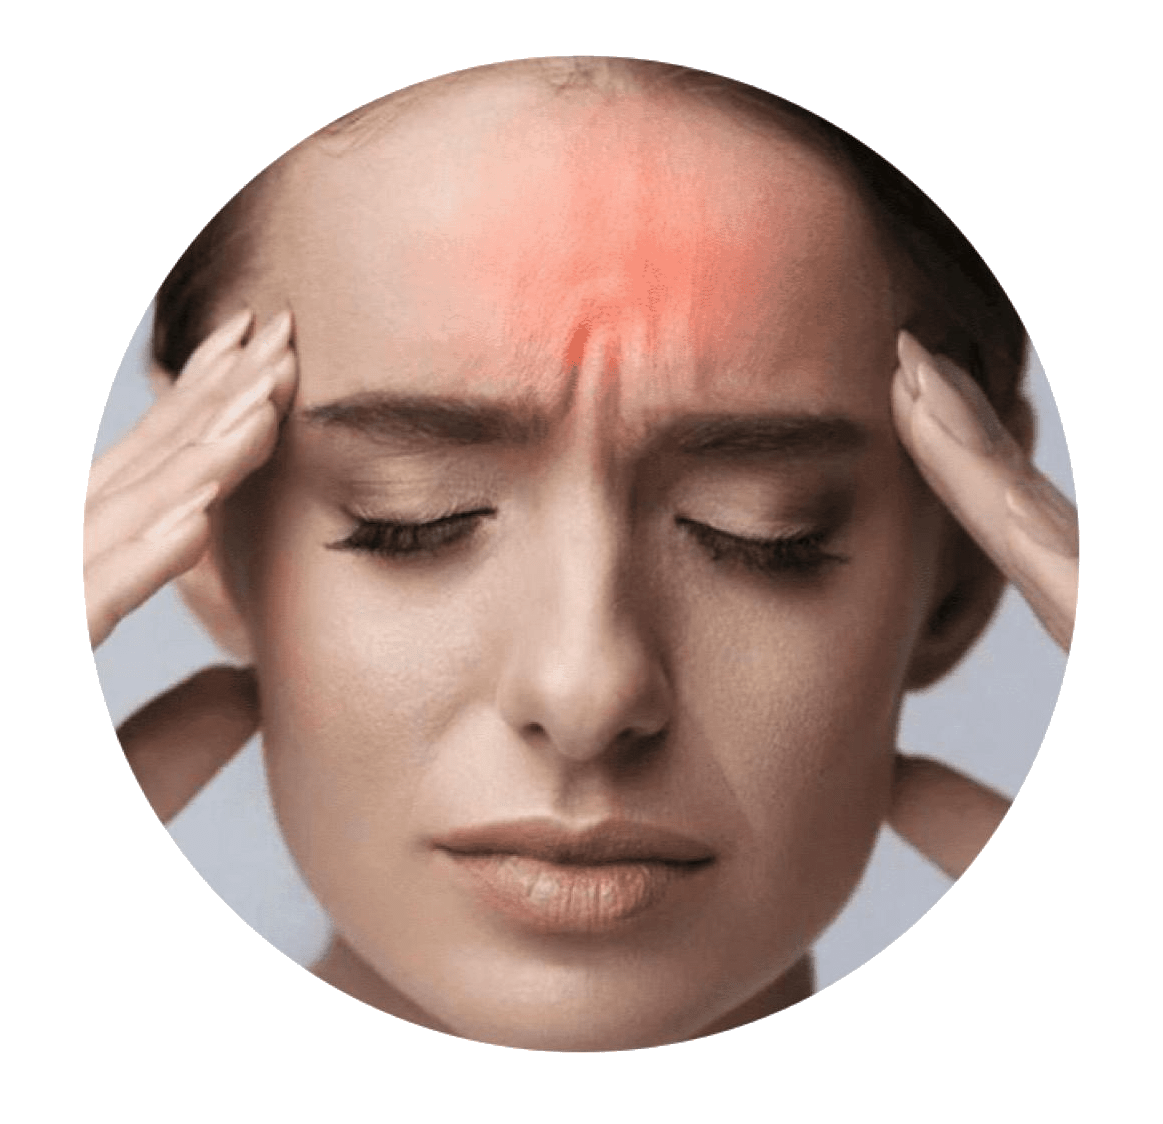 Migraine does not have to be a constant in your life